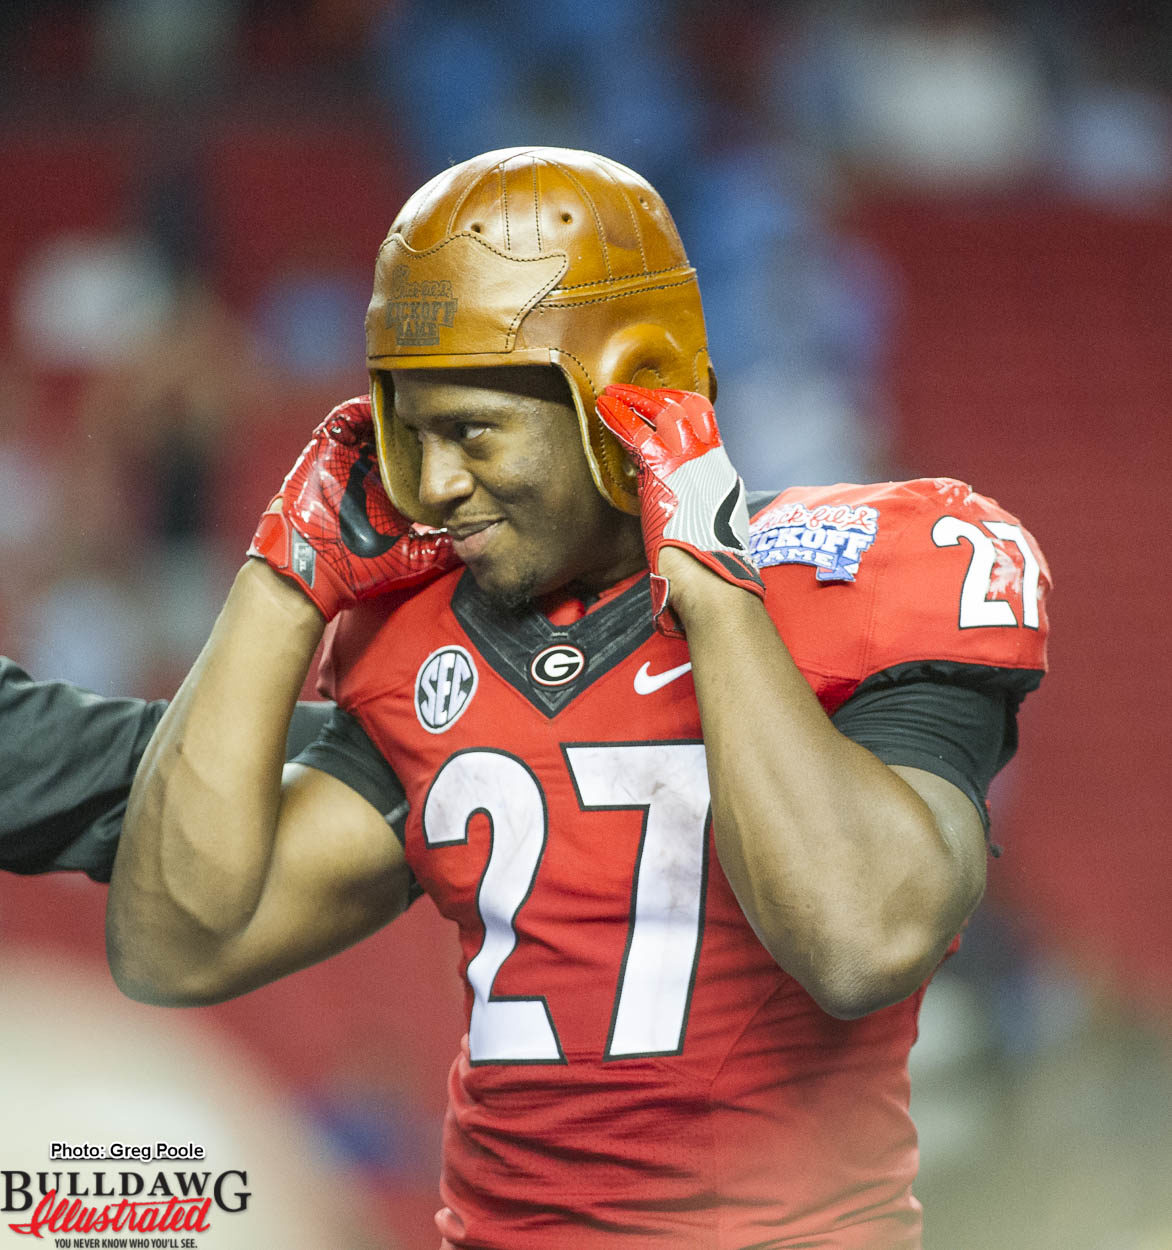 Nick Chubb tries on the leather helmet